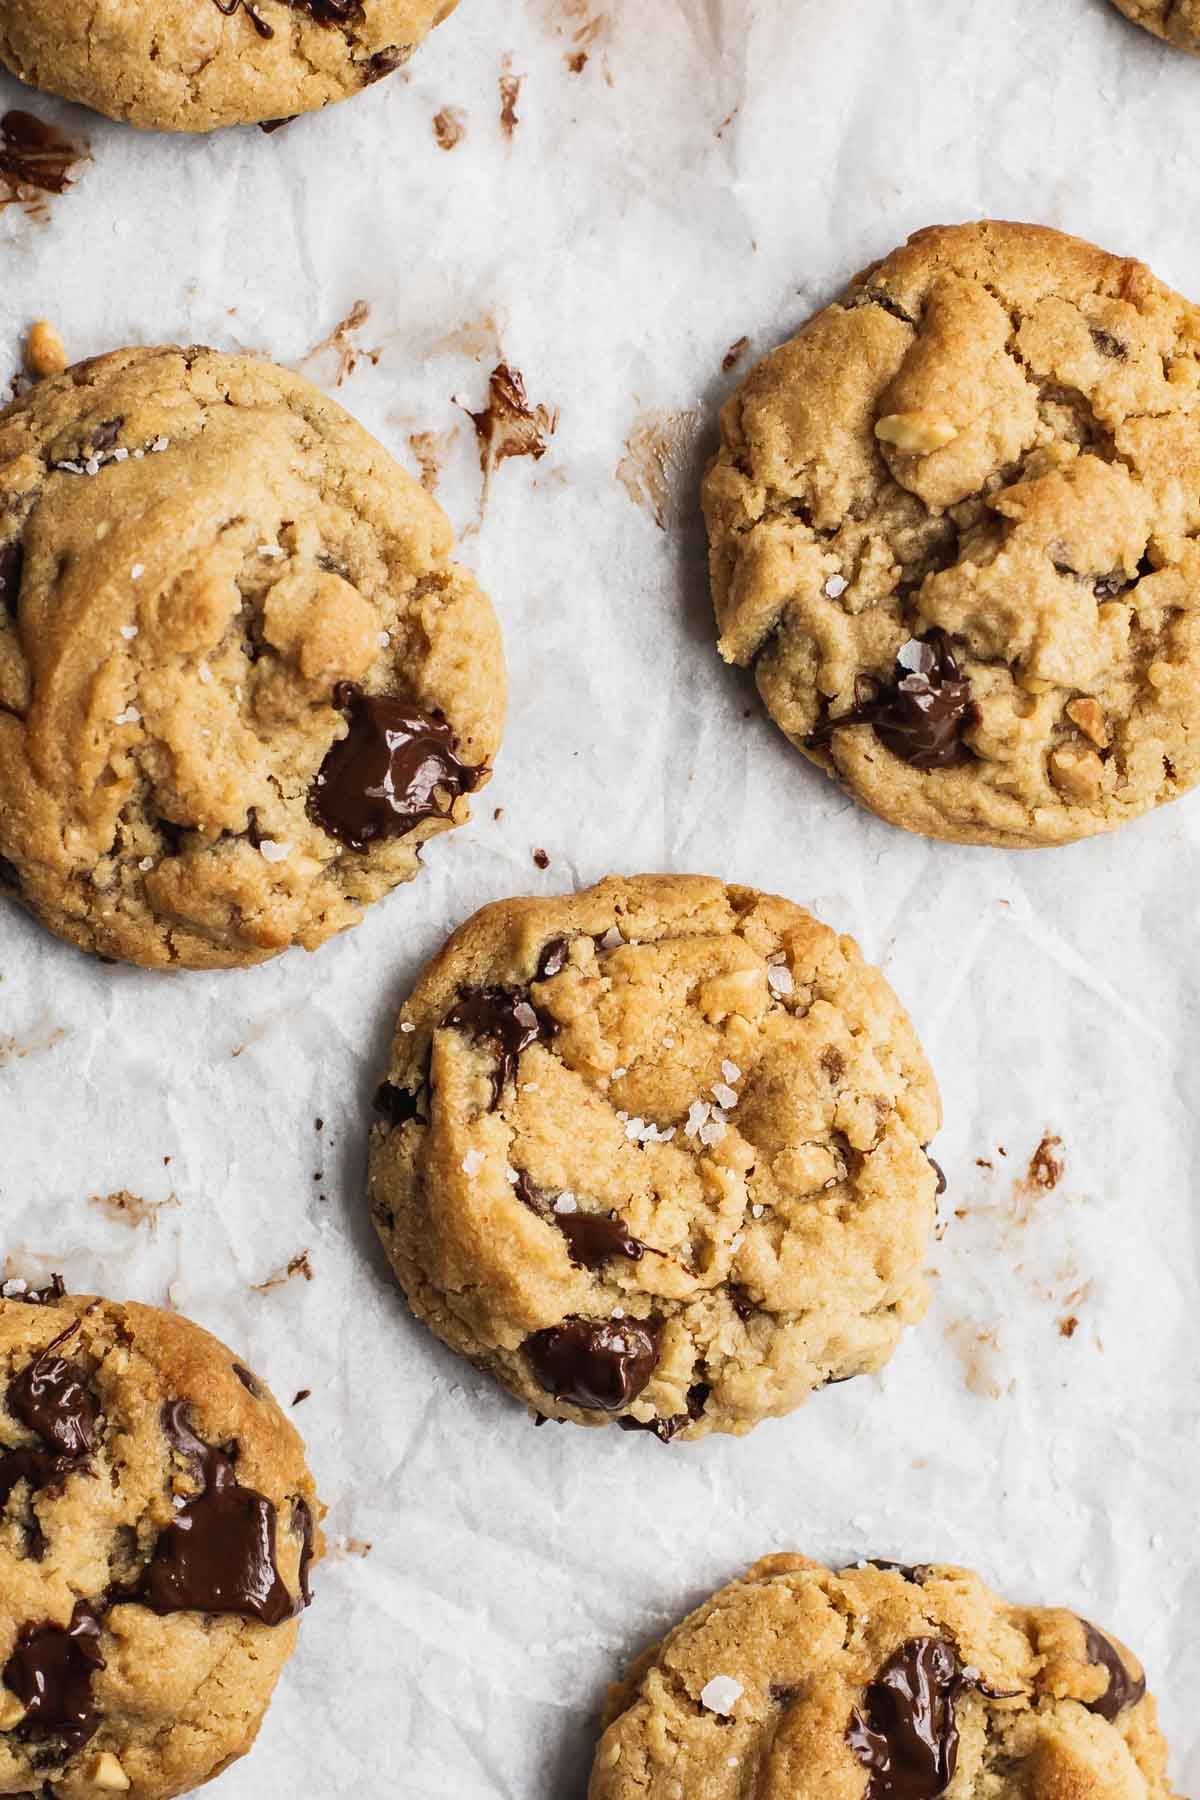 Freshly baked chocolate chip cookies on baking paper.